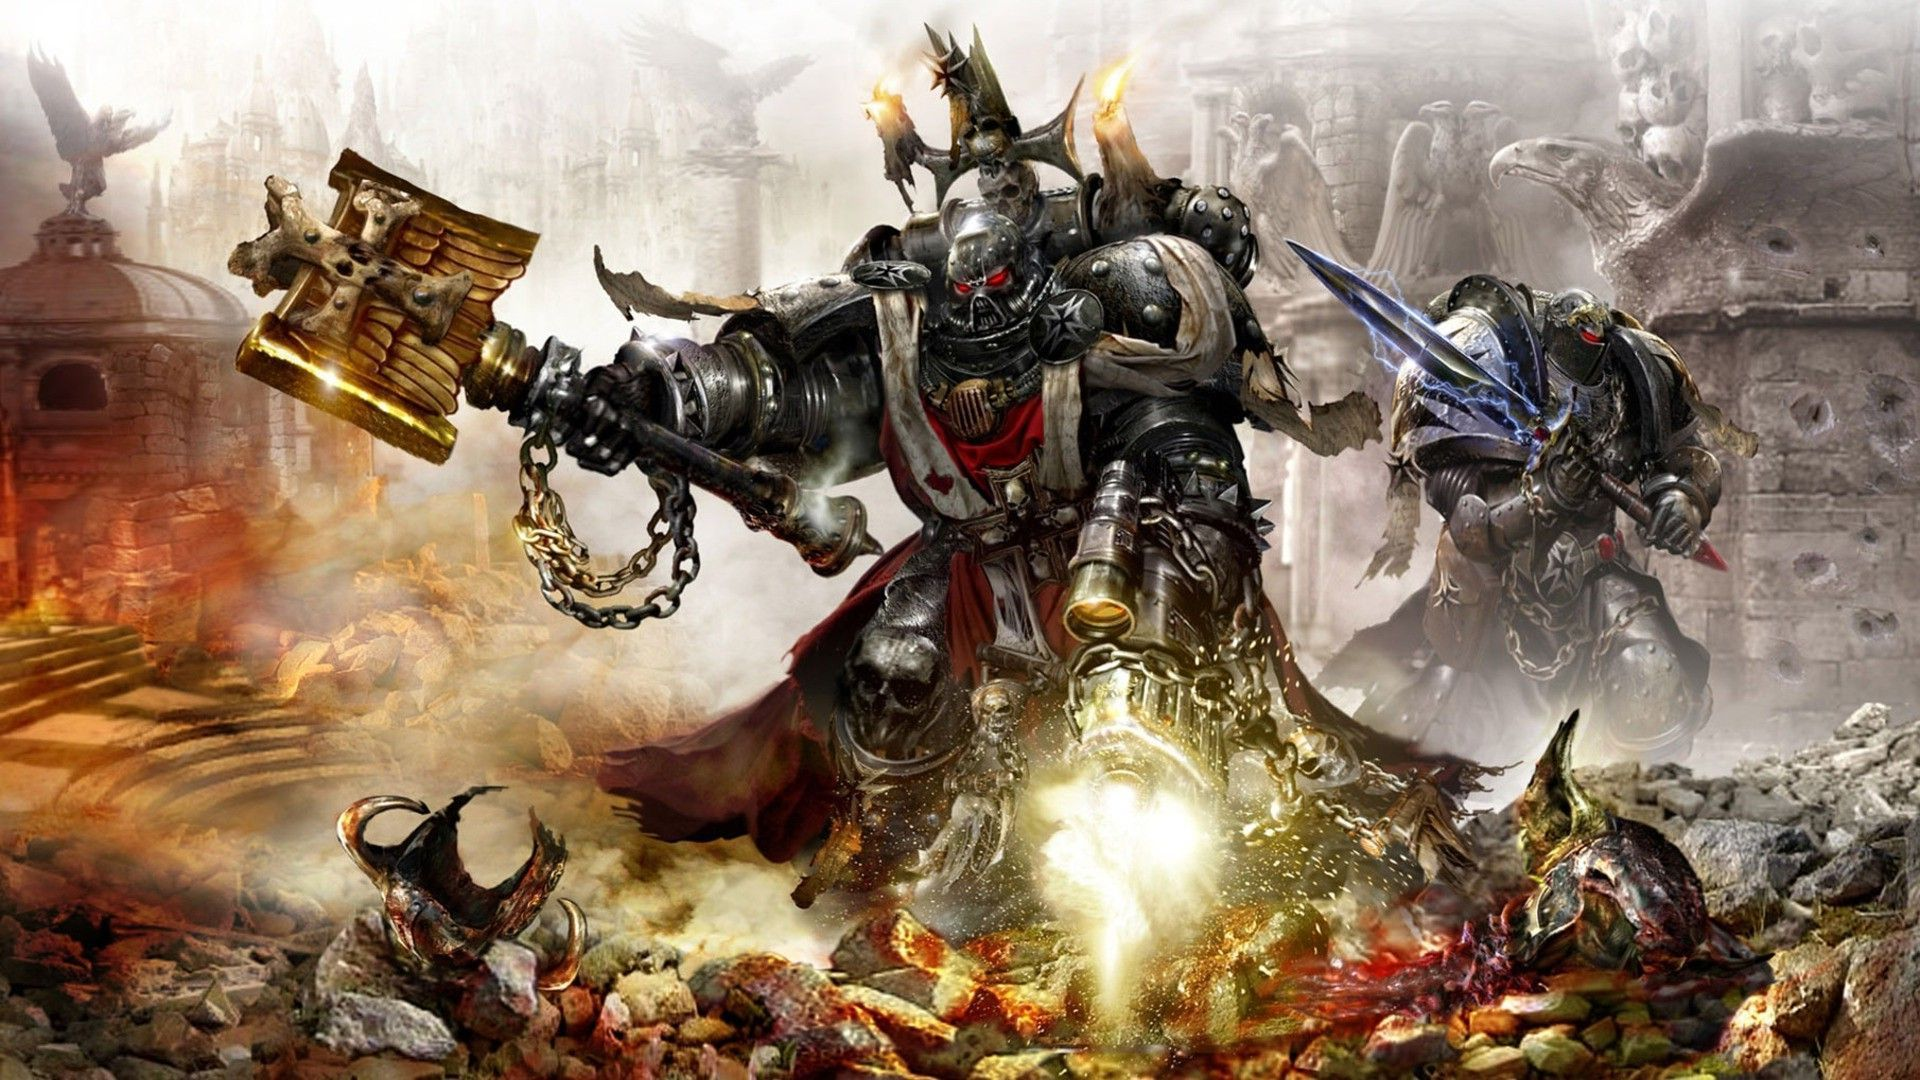 warhammer 40k background